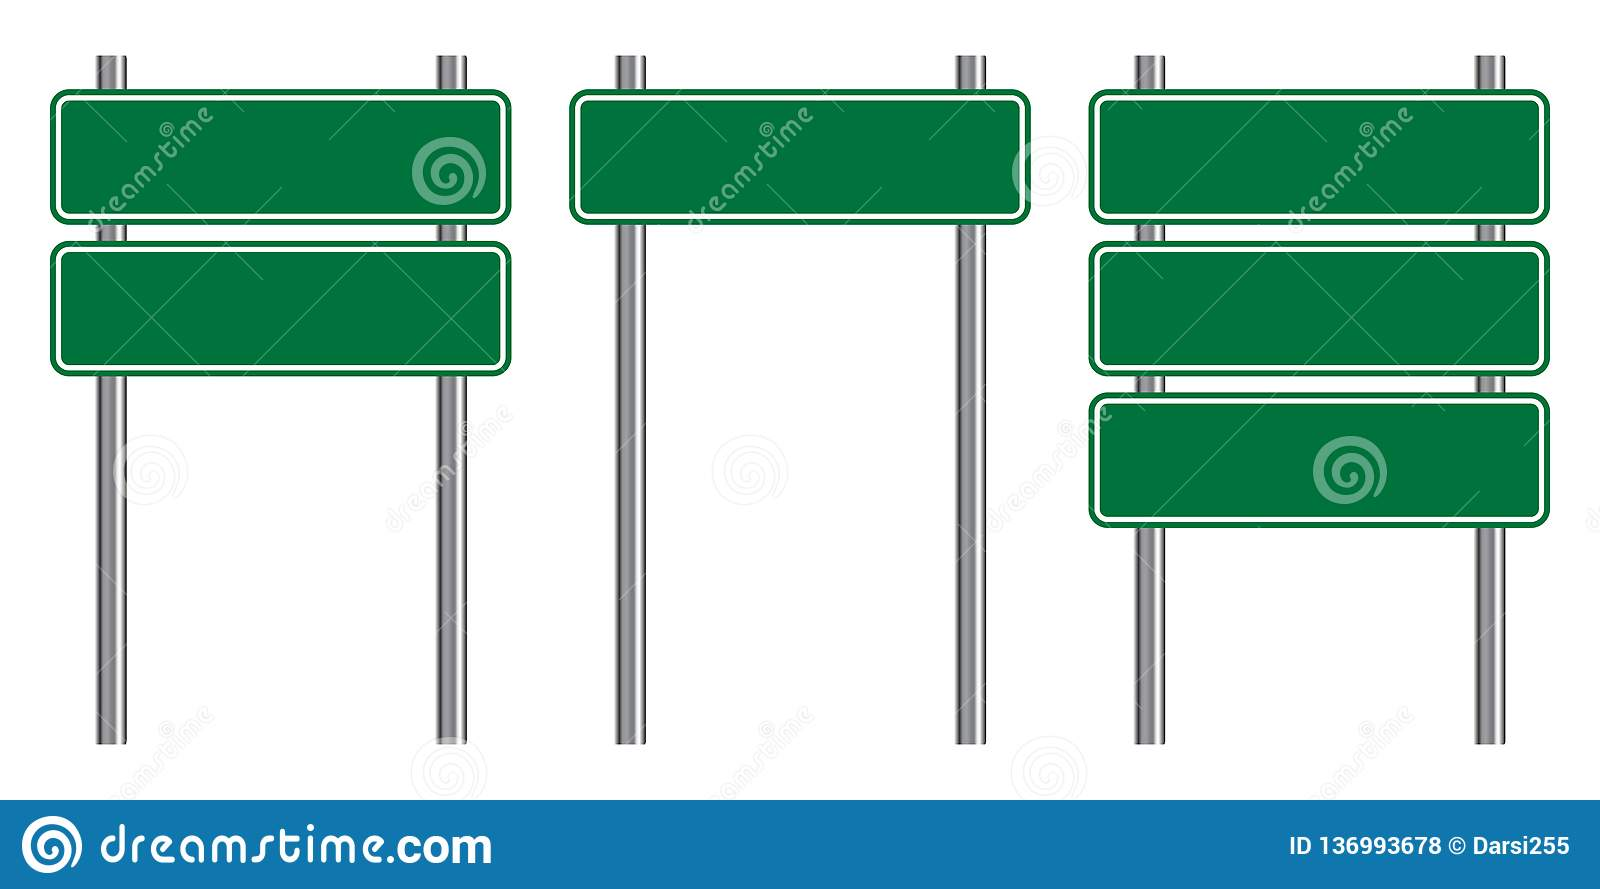 Blank Traffic Road Sign Set Empty Street Signs Green